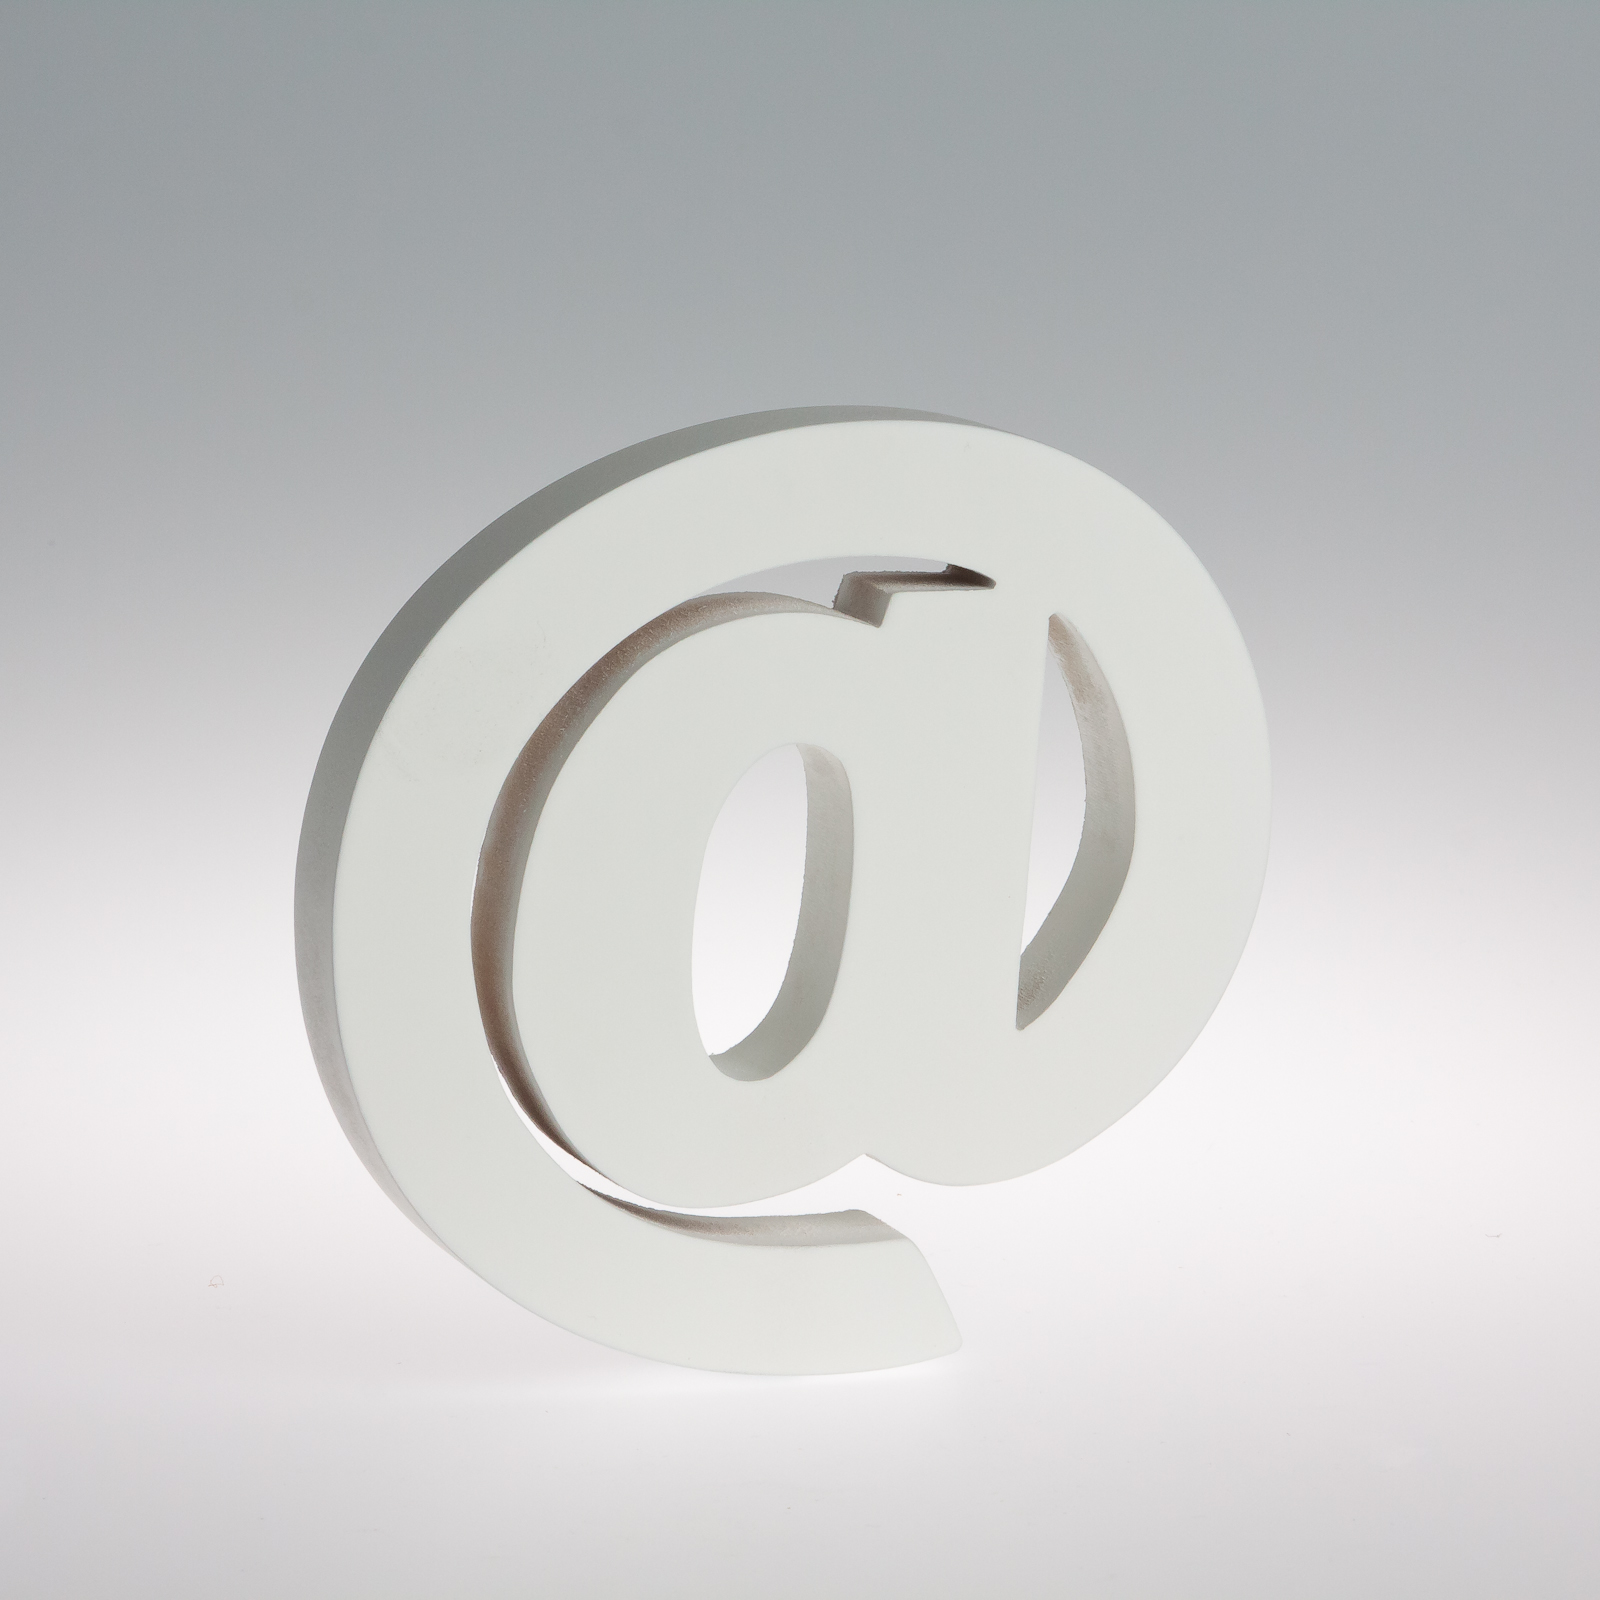 18cm - White Wooden Letters by Splosh / Peace & Thyme-395